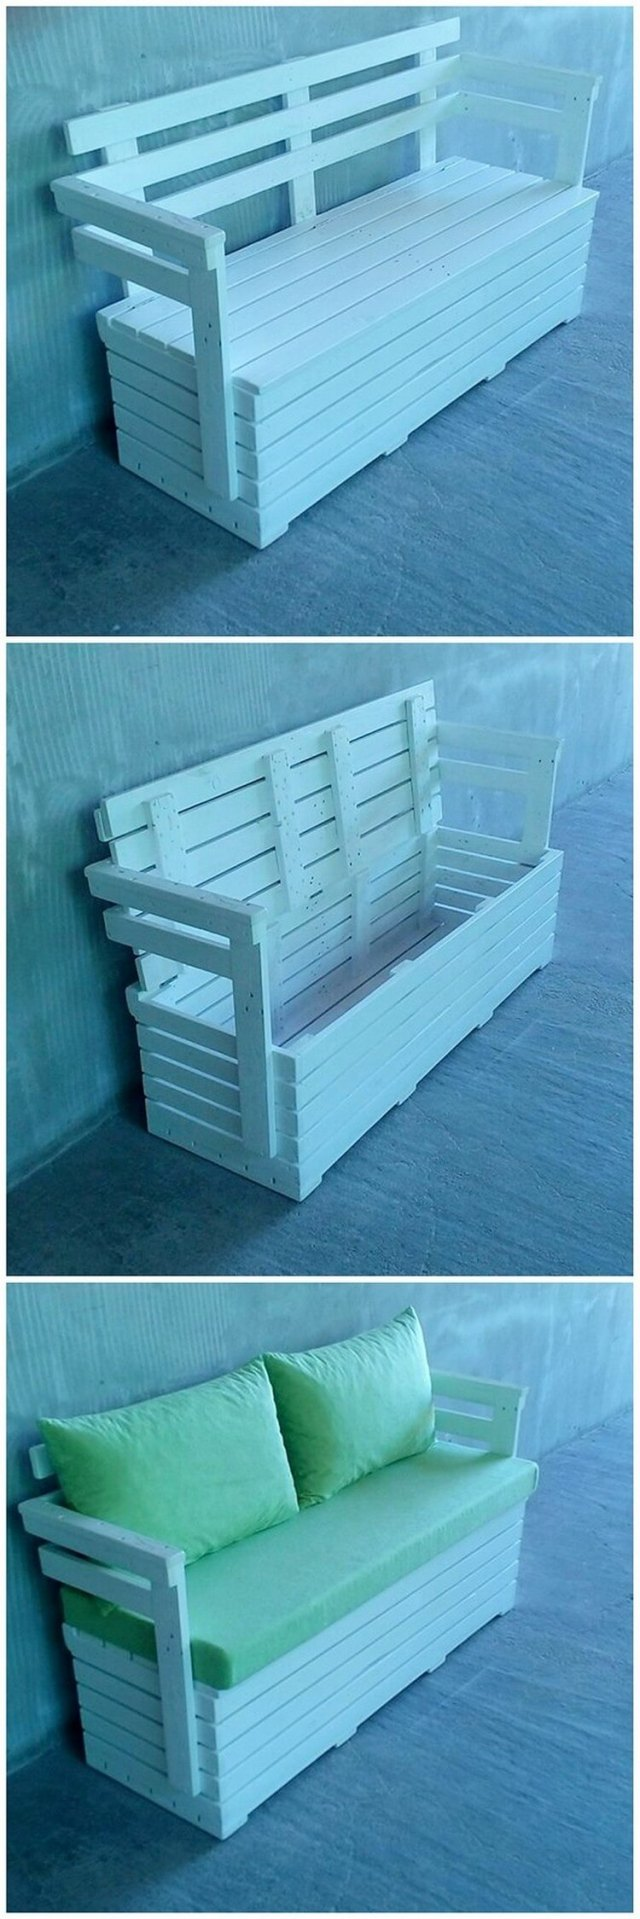 Wood Pallet Couch with Storage